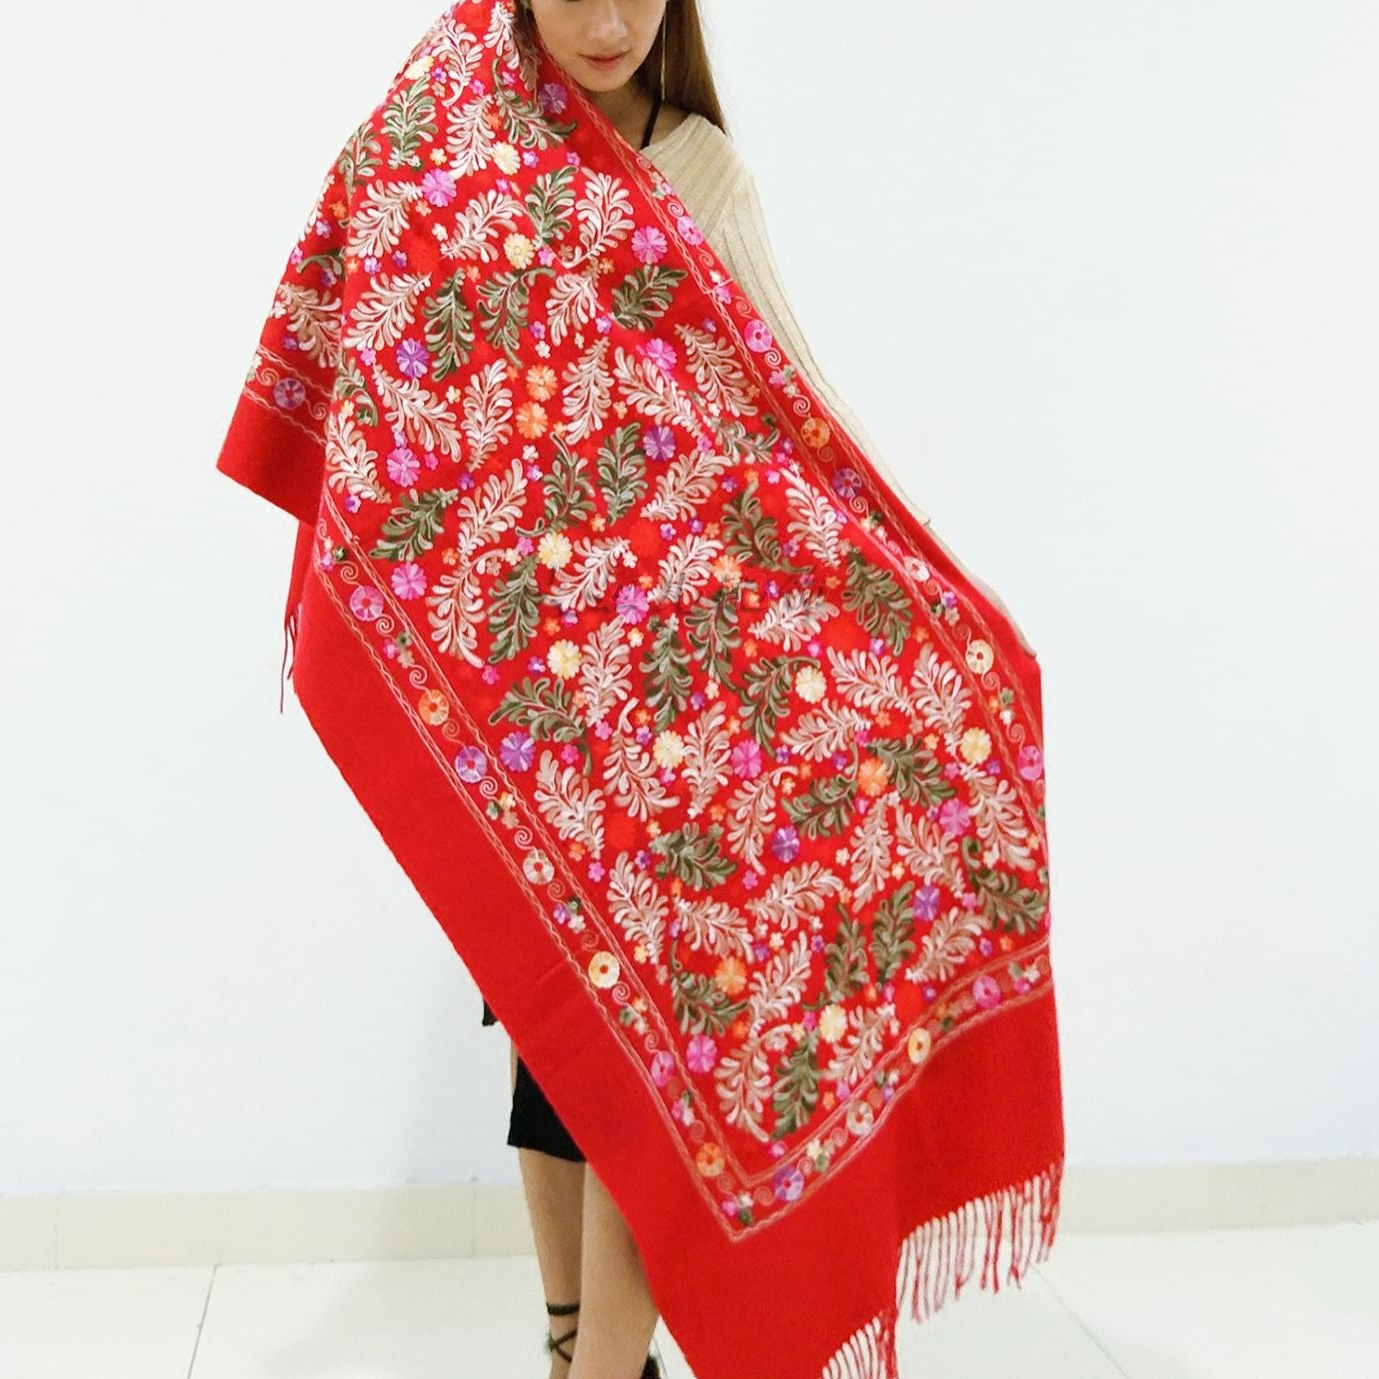 Winter Scarf womens exotic ethnic style wool cashmere versatile long fashion Nepal embroidered tourism shawl